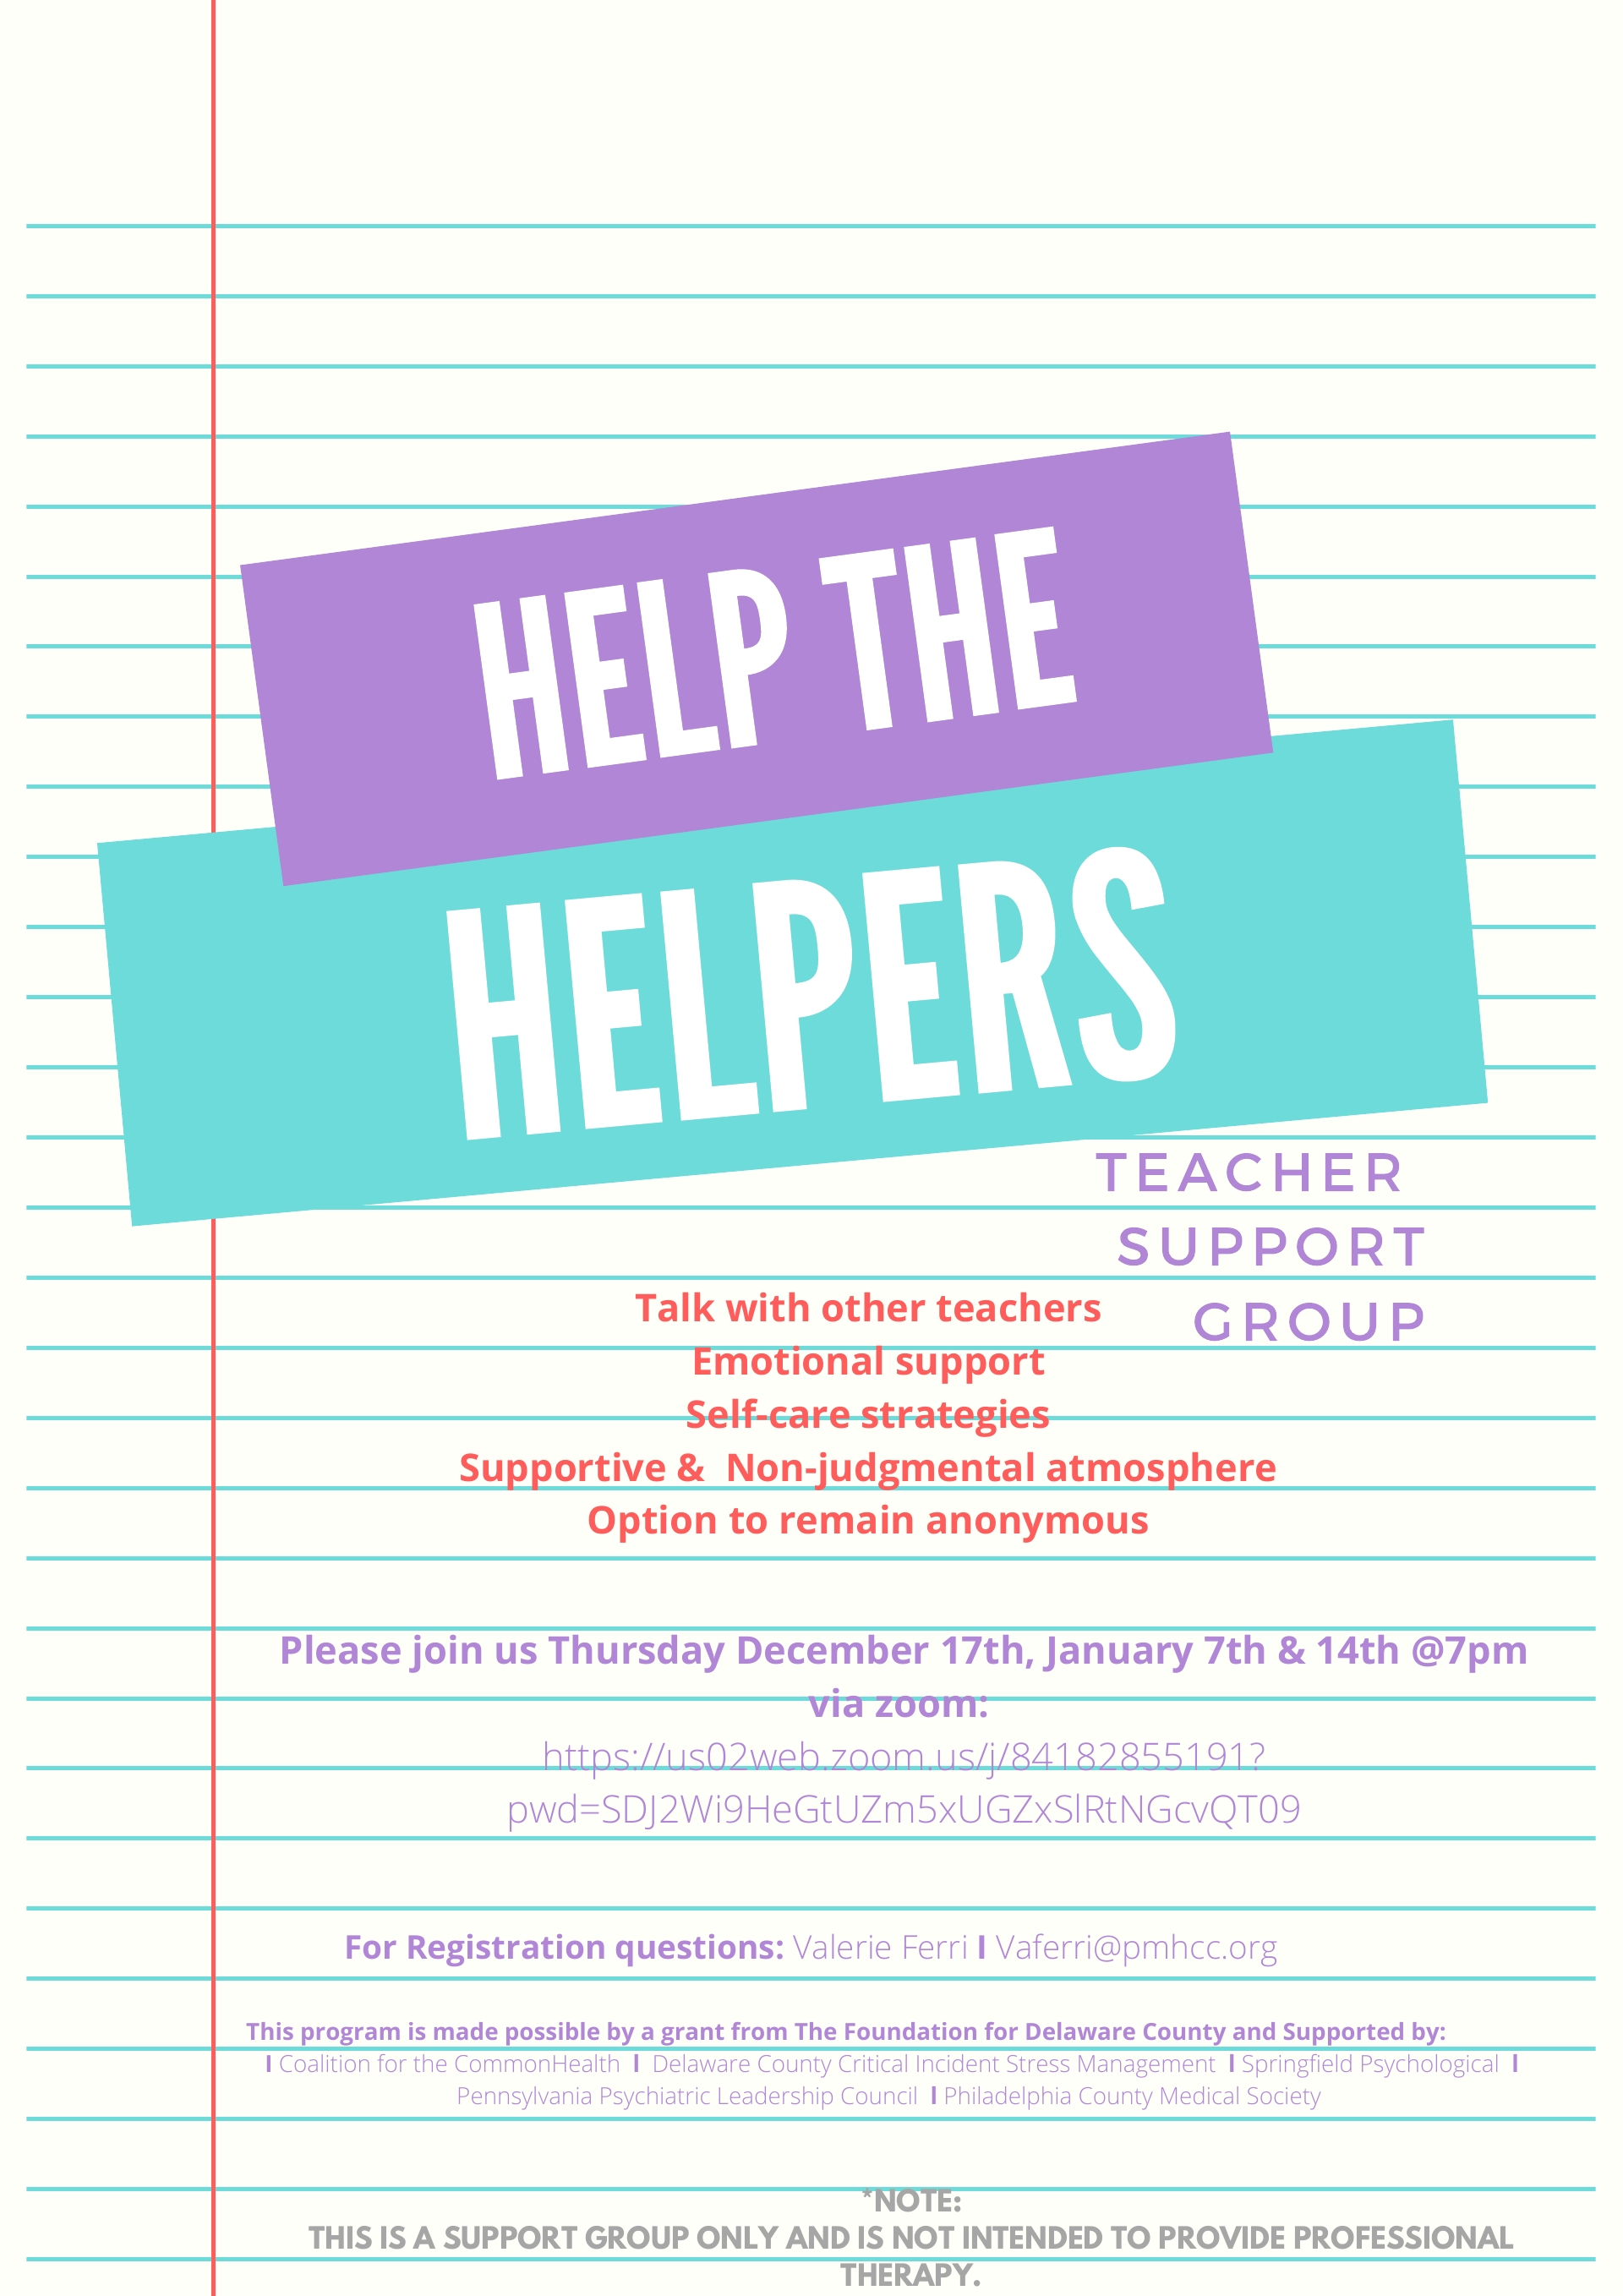 TEACHER SUPPORT GROUP January 7th & 14th @7pm